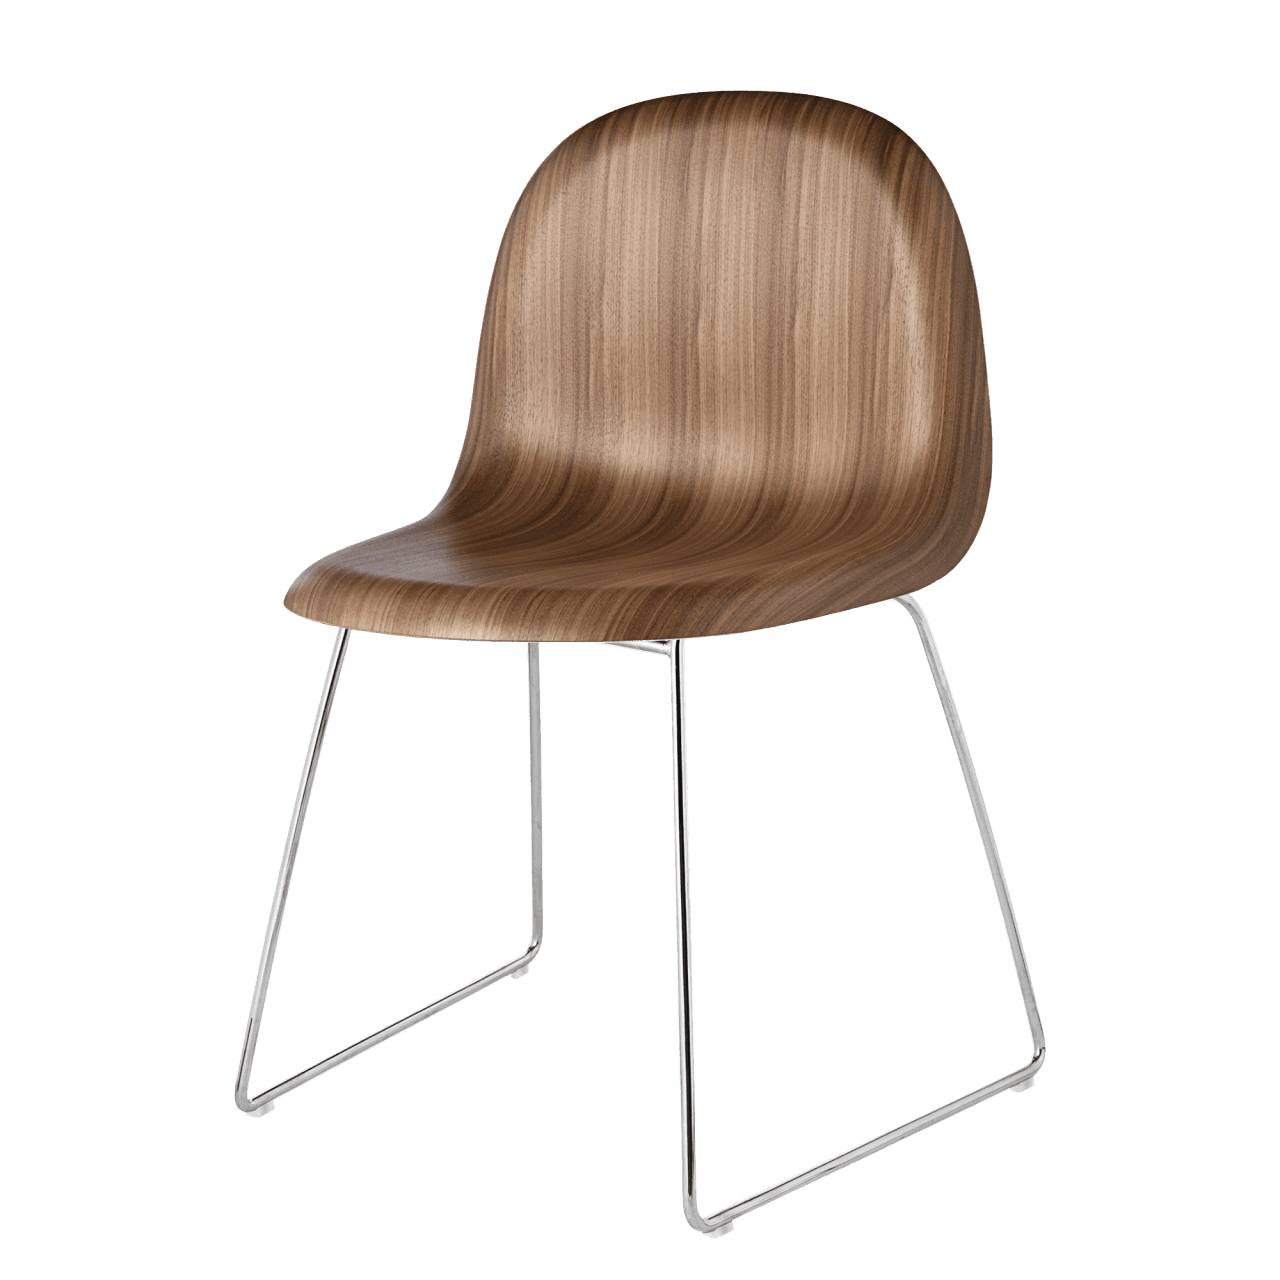 3D Dining Chair Kufengestell